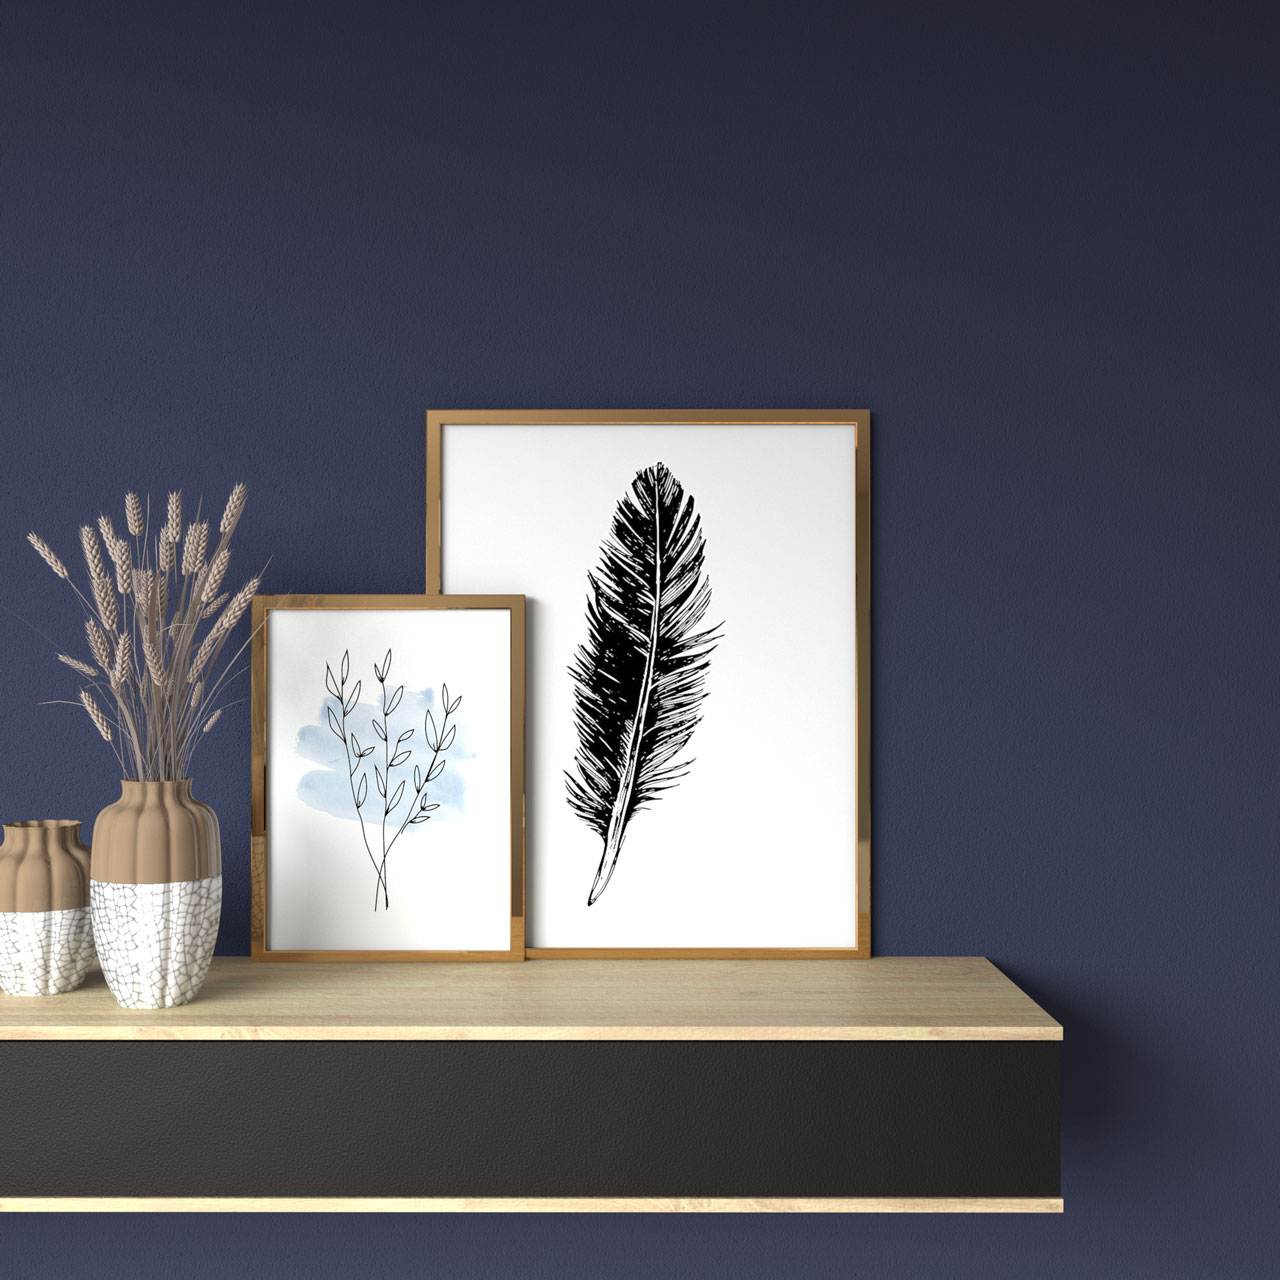 Navy blue wall with gold picture frame